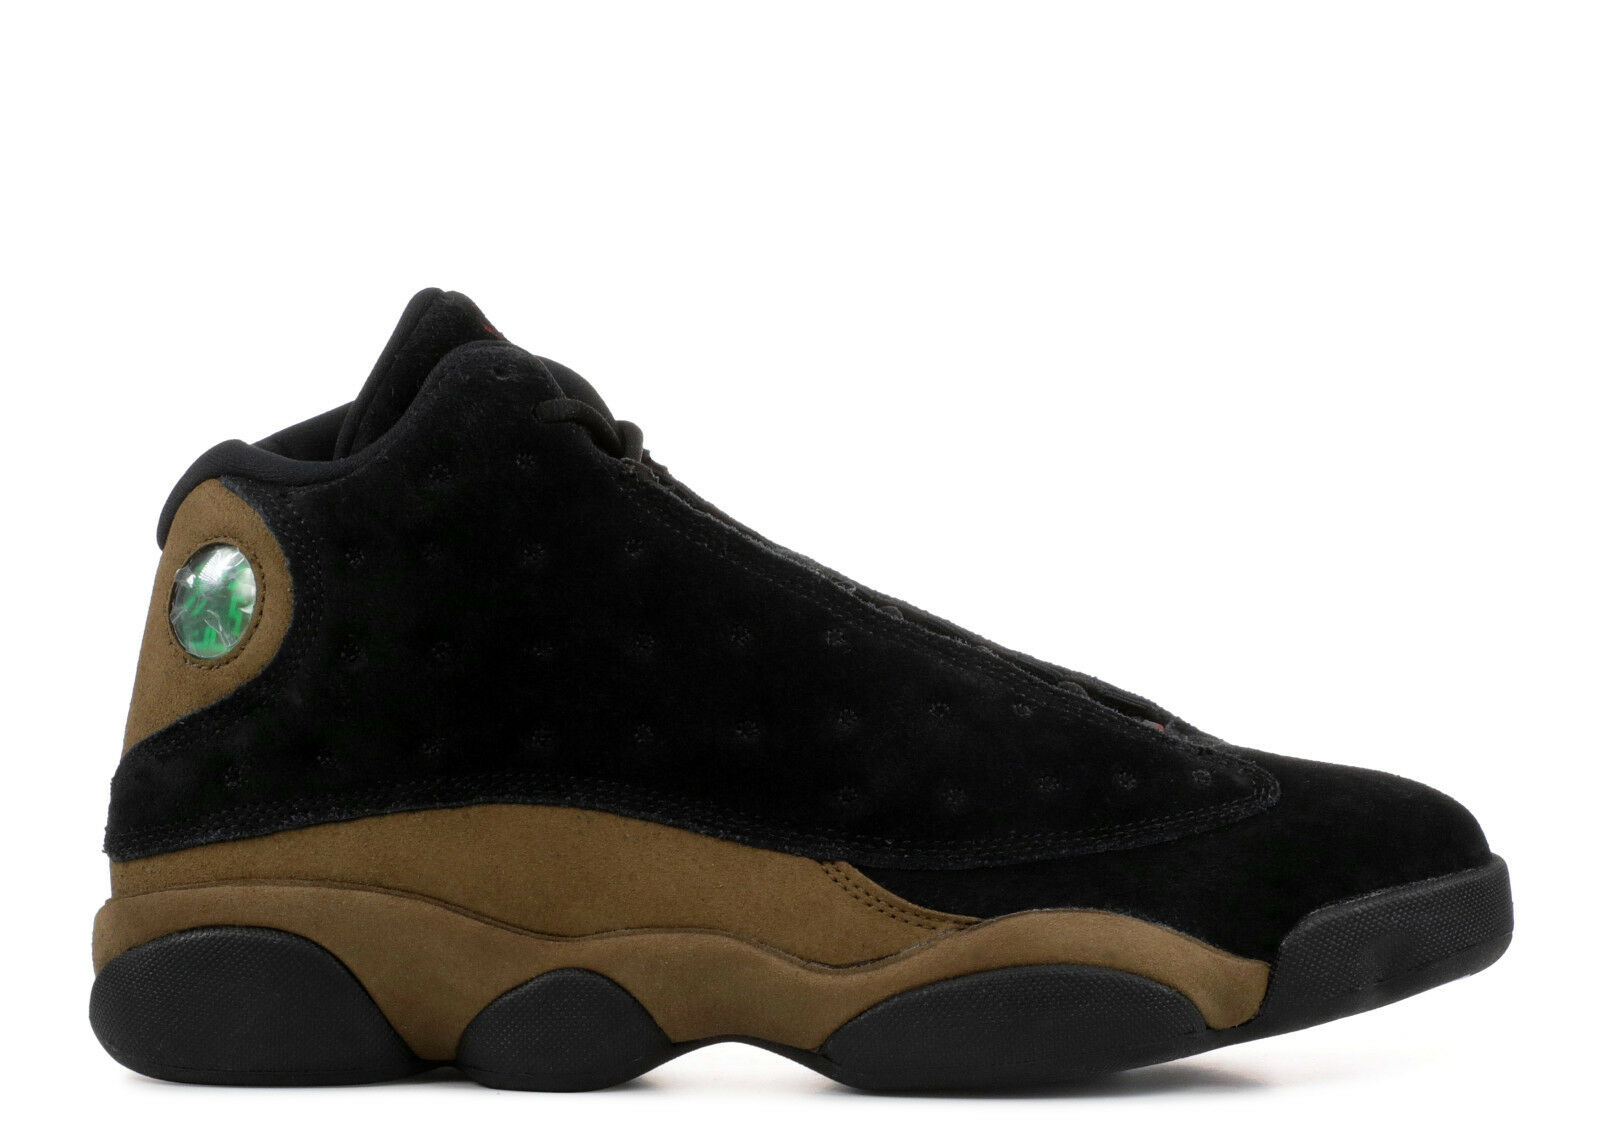 SALE Nike Air Jordan 13 XIII Retro Olive 2018 414571-006 Black Gym Red The latest discount shoes for men and women